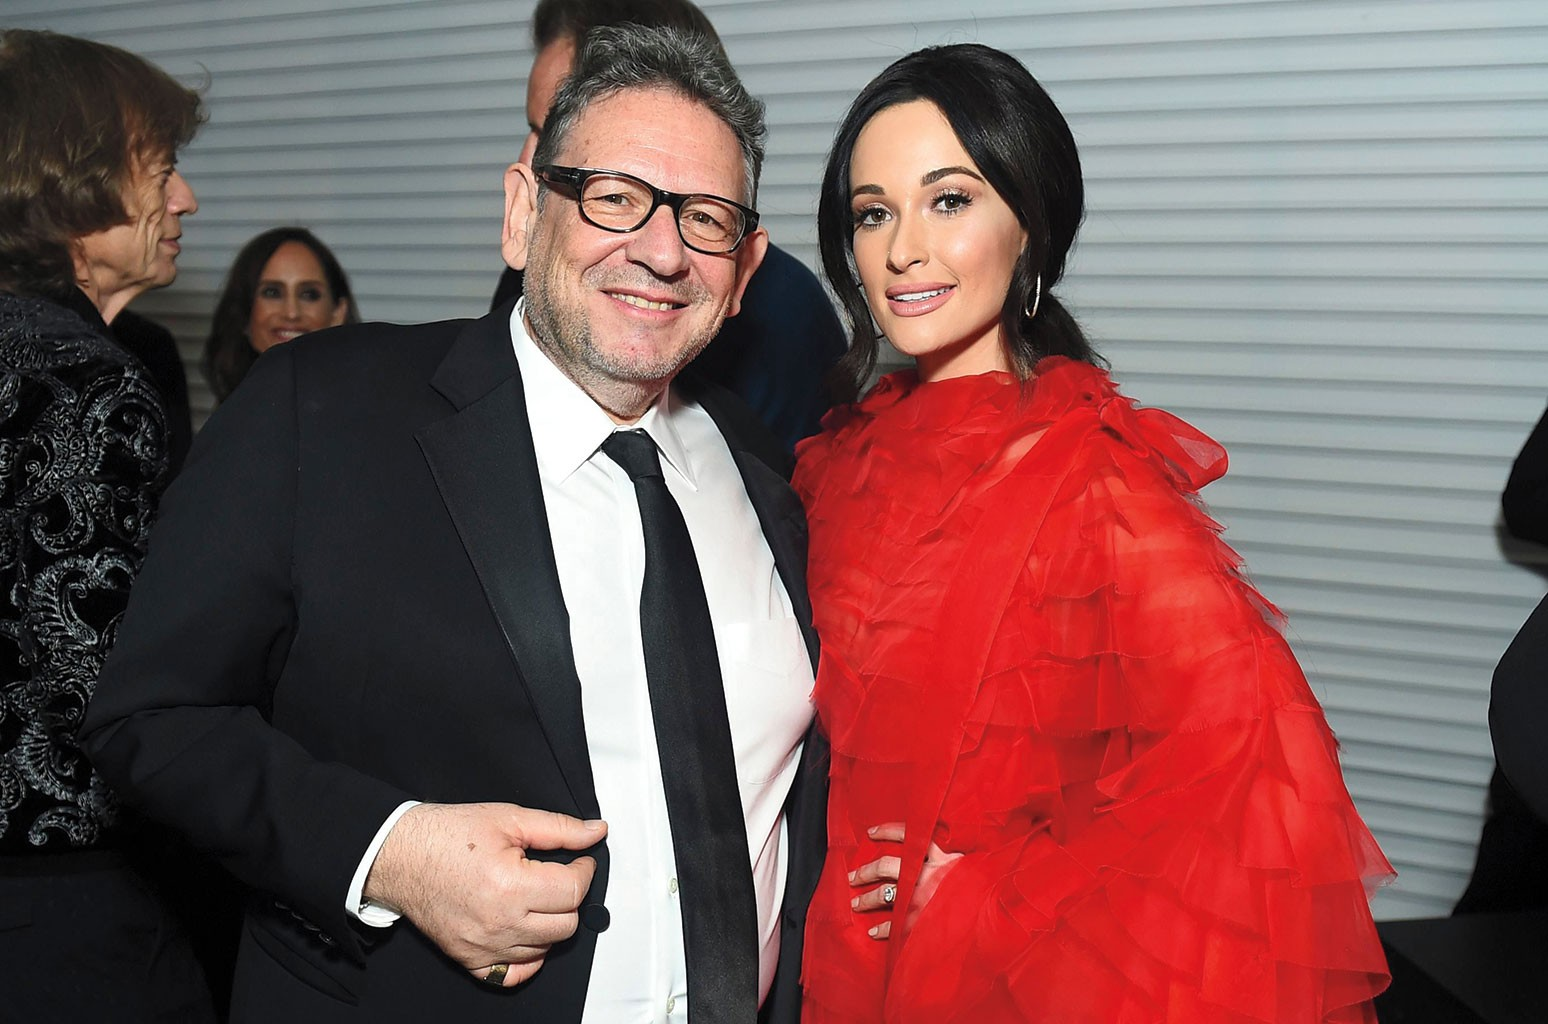 Grainge with Kacey Musgraves.